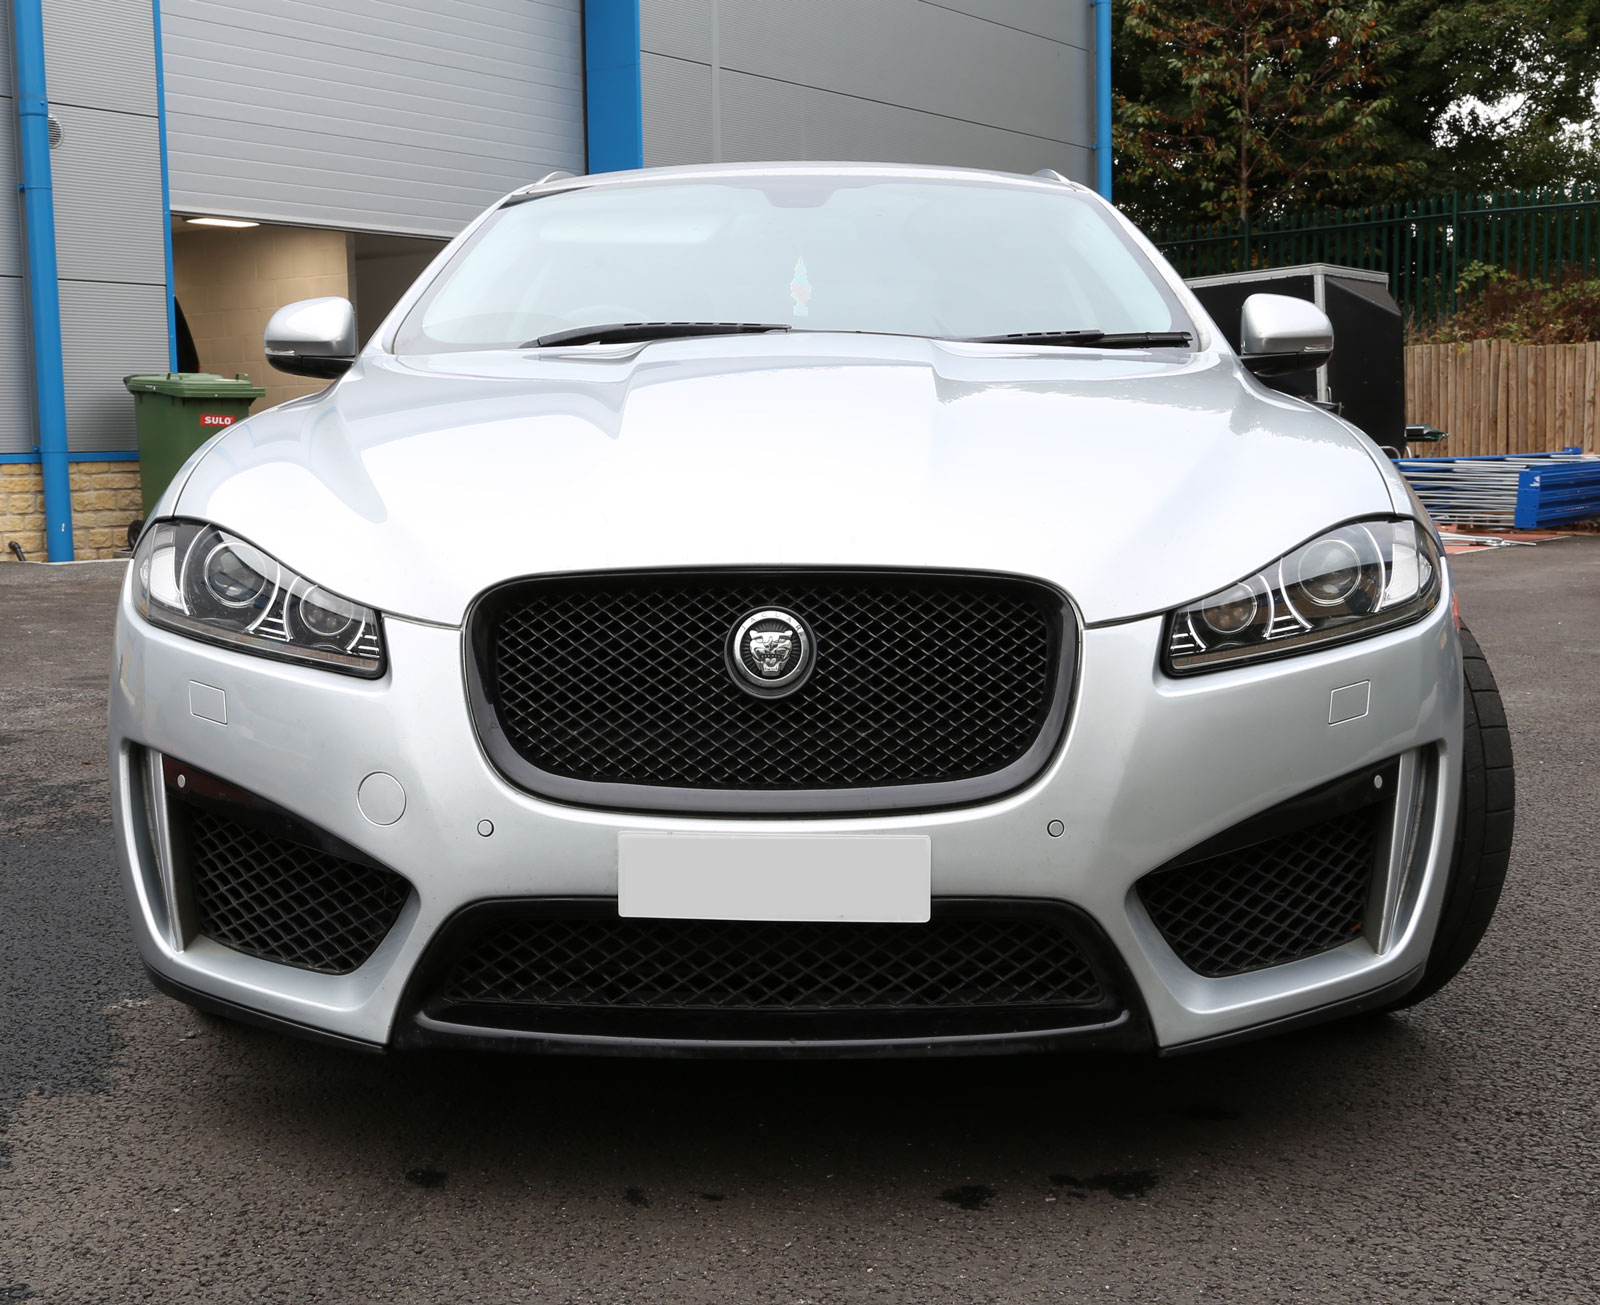 front bumper xfr s style bodykit for jaguar xf 2011. Black Bedroom Furniture Sets. Home Design Ideas